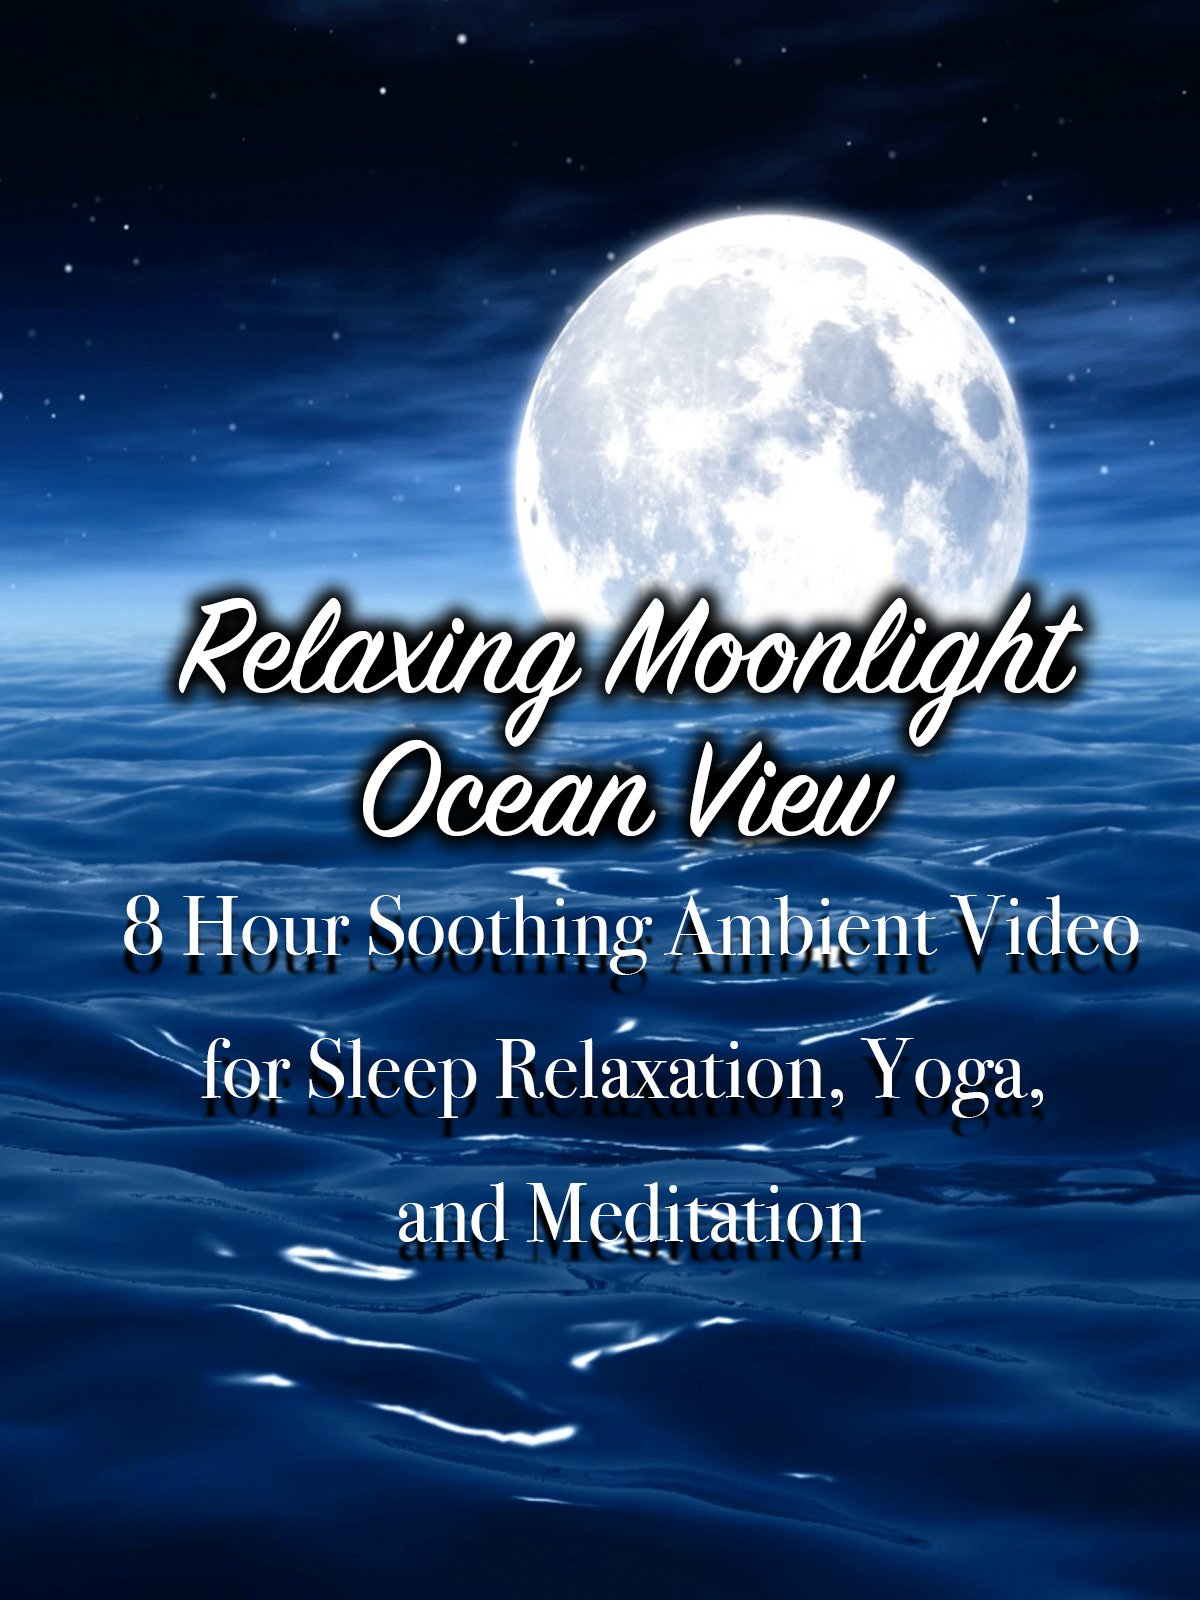 Relaxing Moonlight Ocean View 8 Hour Soothing Ambient Video for Sleep Relaxation, Yoga, and Meditation